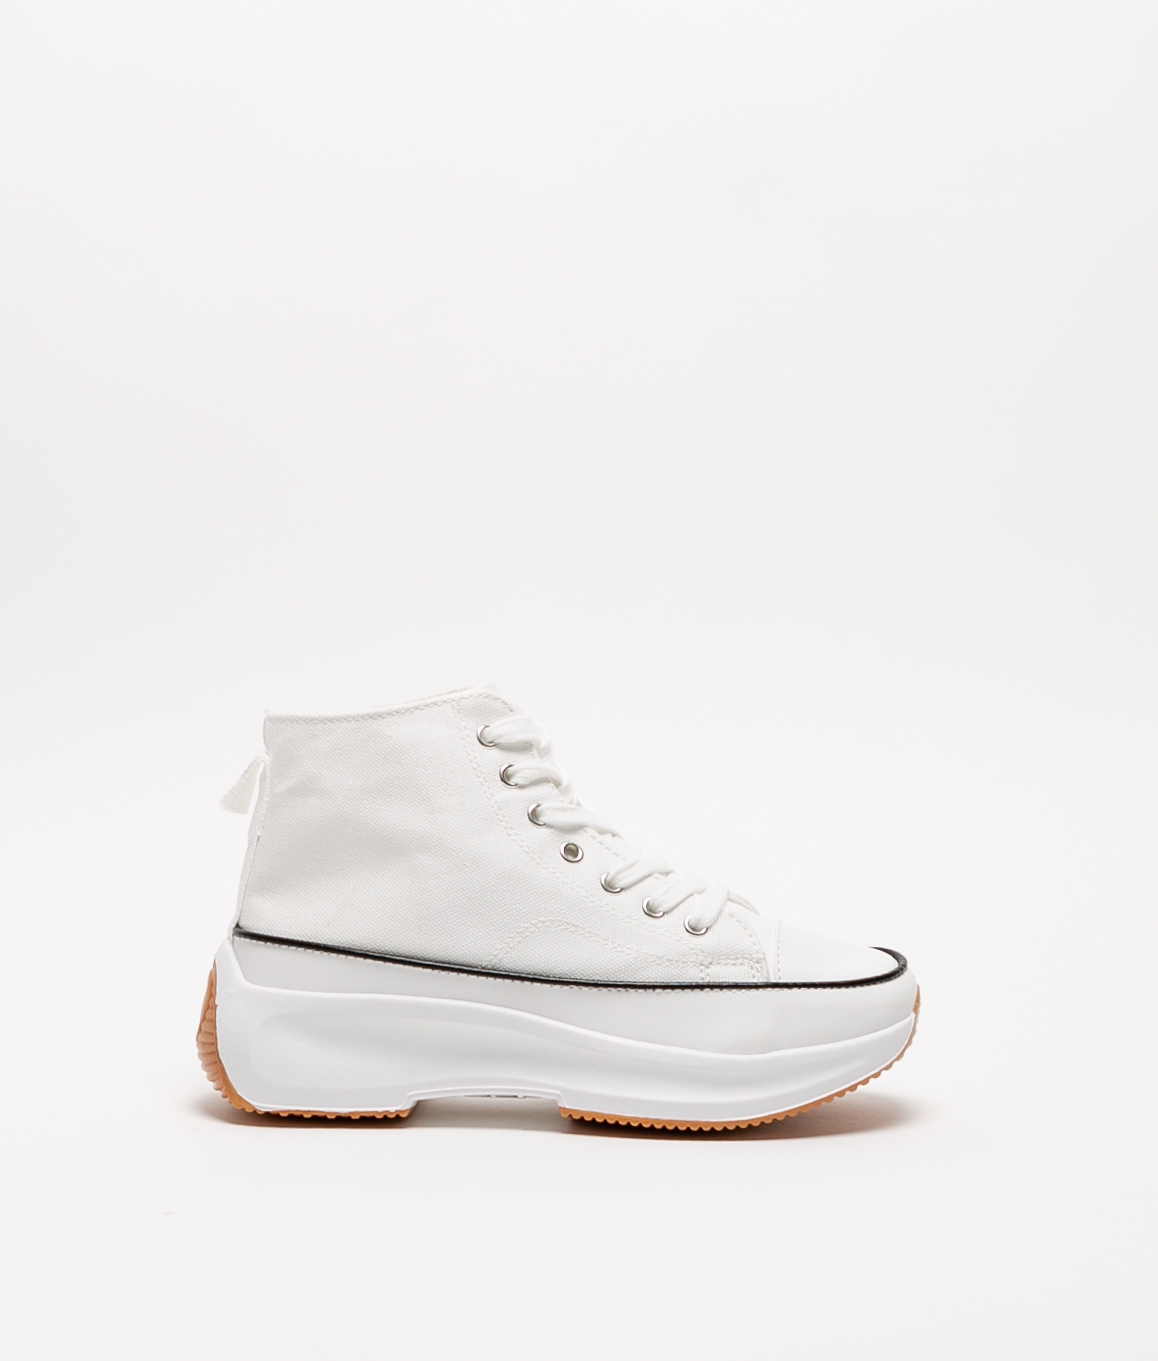 Sneakers CREMY - white